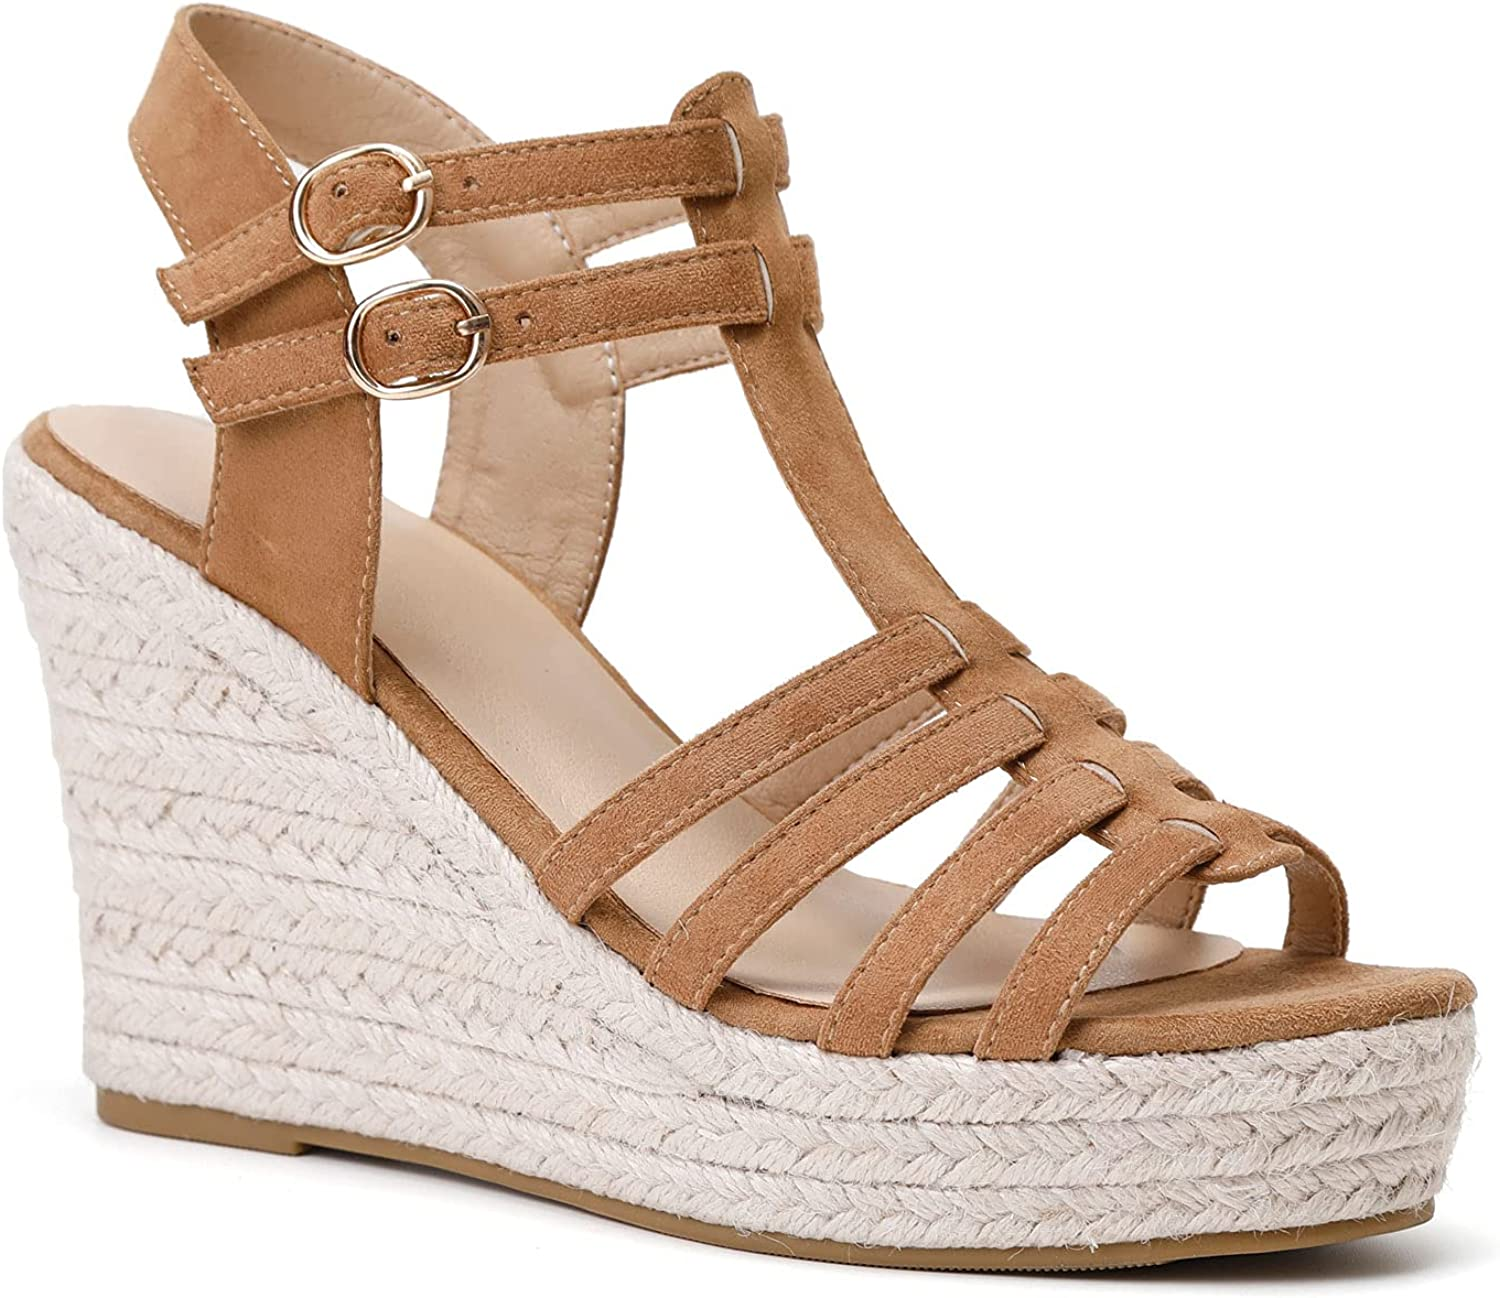 Women's Classic Summer Platform Dress Strap Sandals Wedge Ankle Large-scale sale Purchase